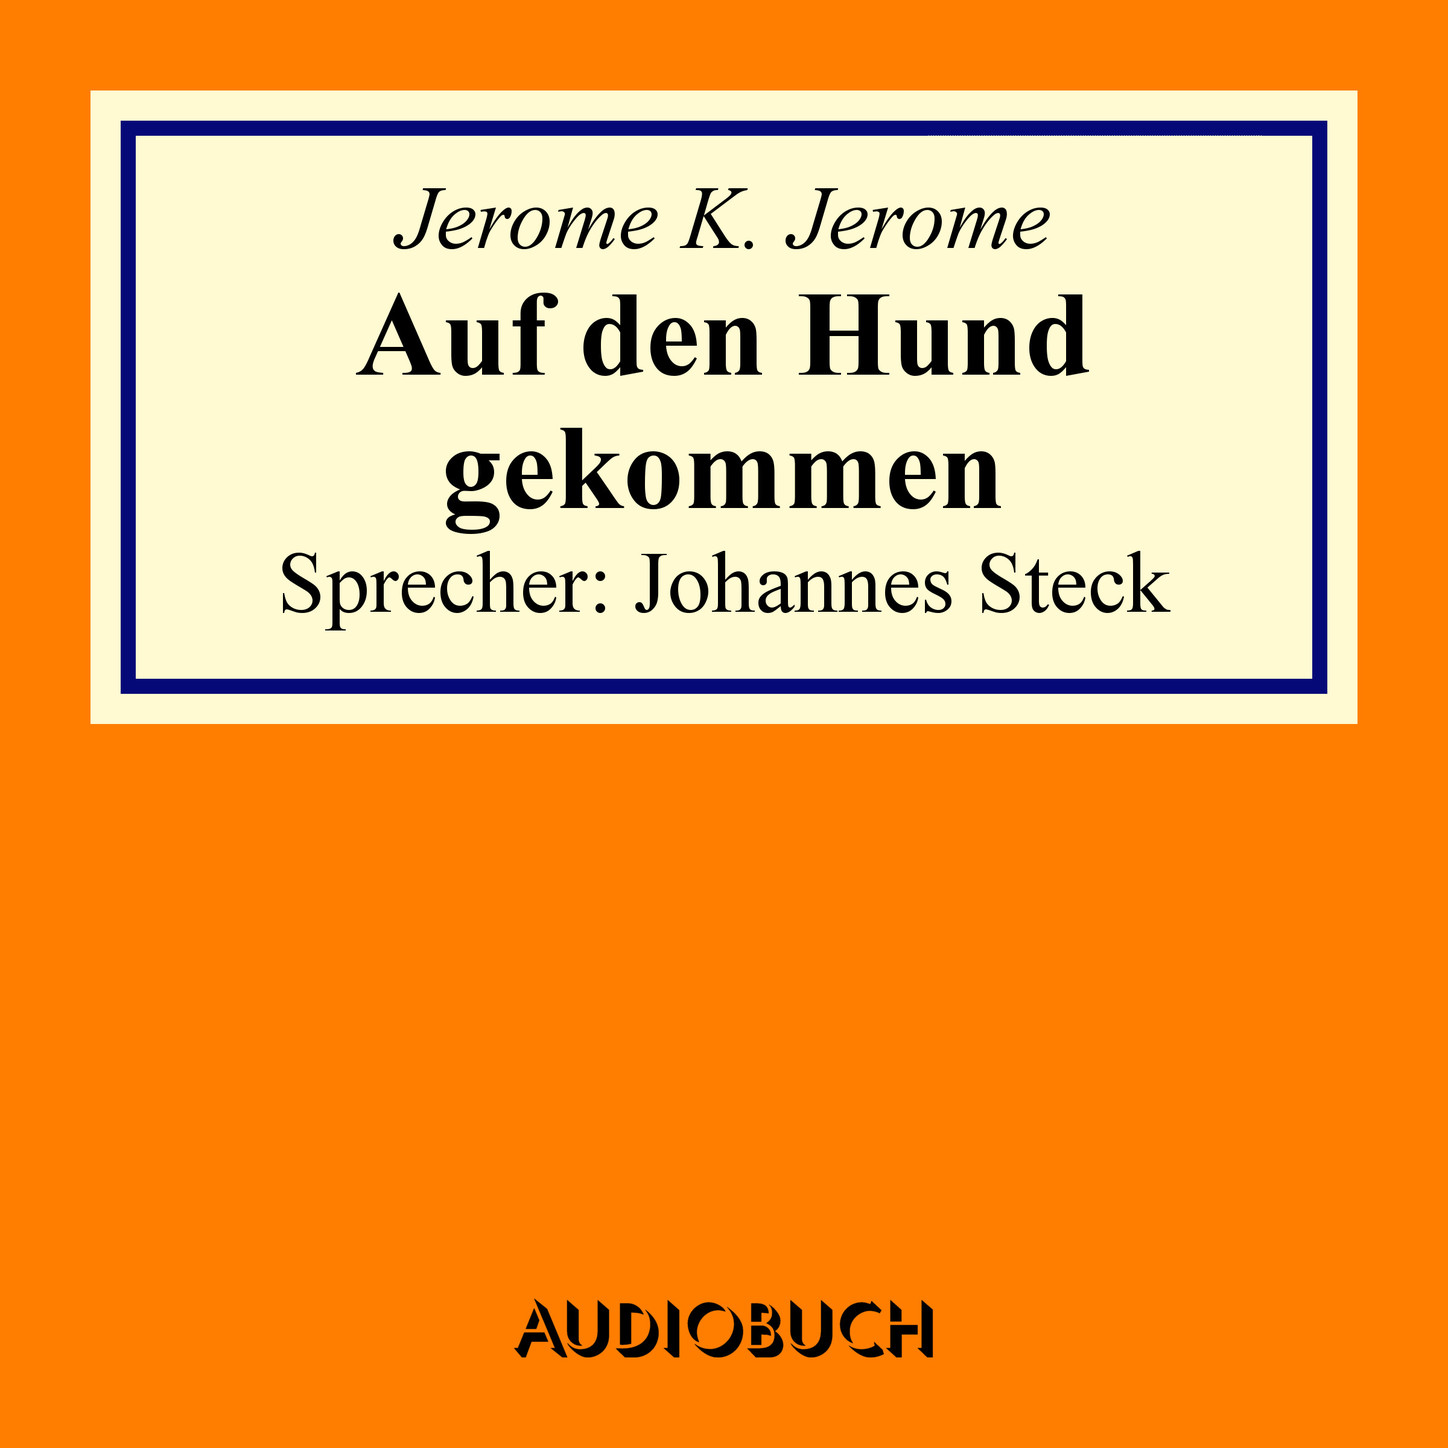 Jerome K. Jerome Auf den Hund gekommen jerome k jerome the second thoughts of an idle fellow